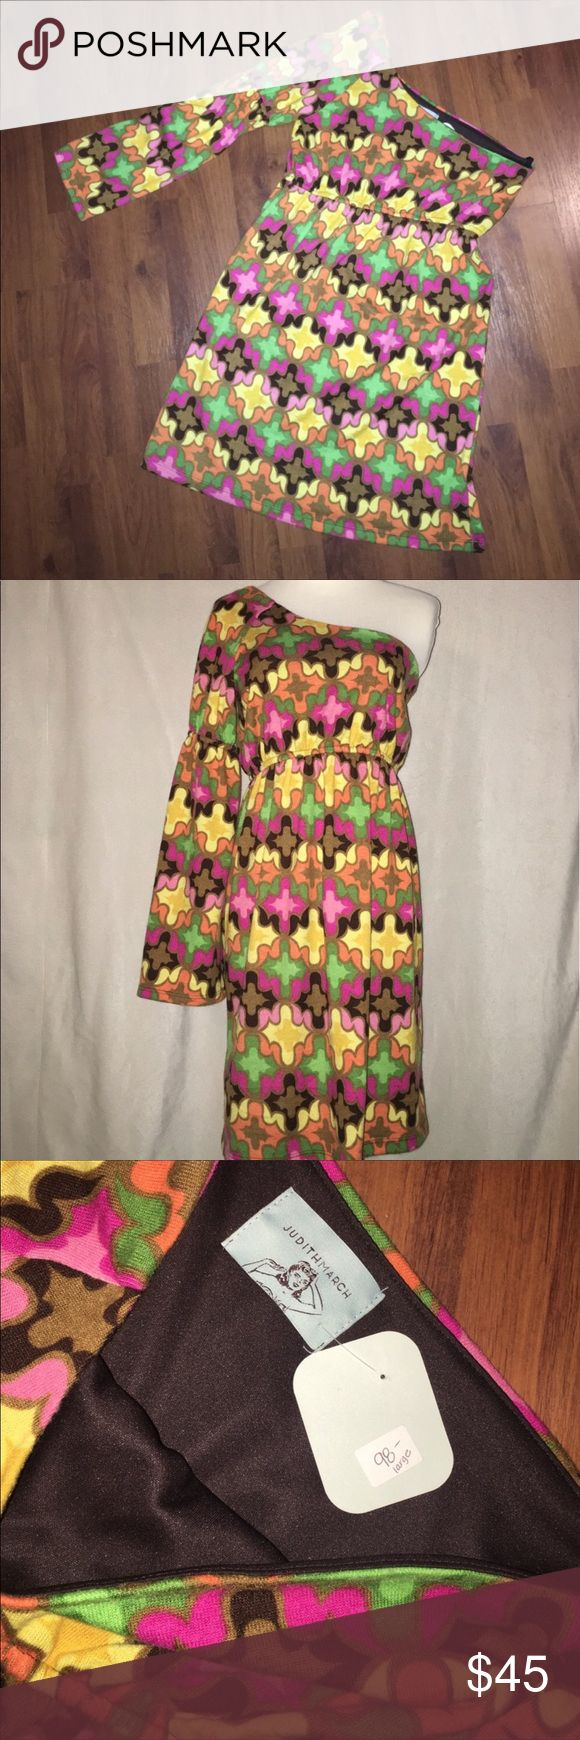 Judith March by Anthropology Dress 97% Polyester and 3% Spandex- New with tags - size large Anthropologie Dresses